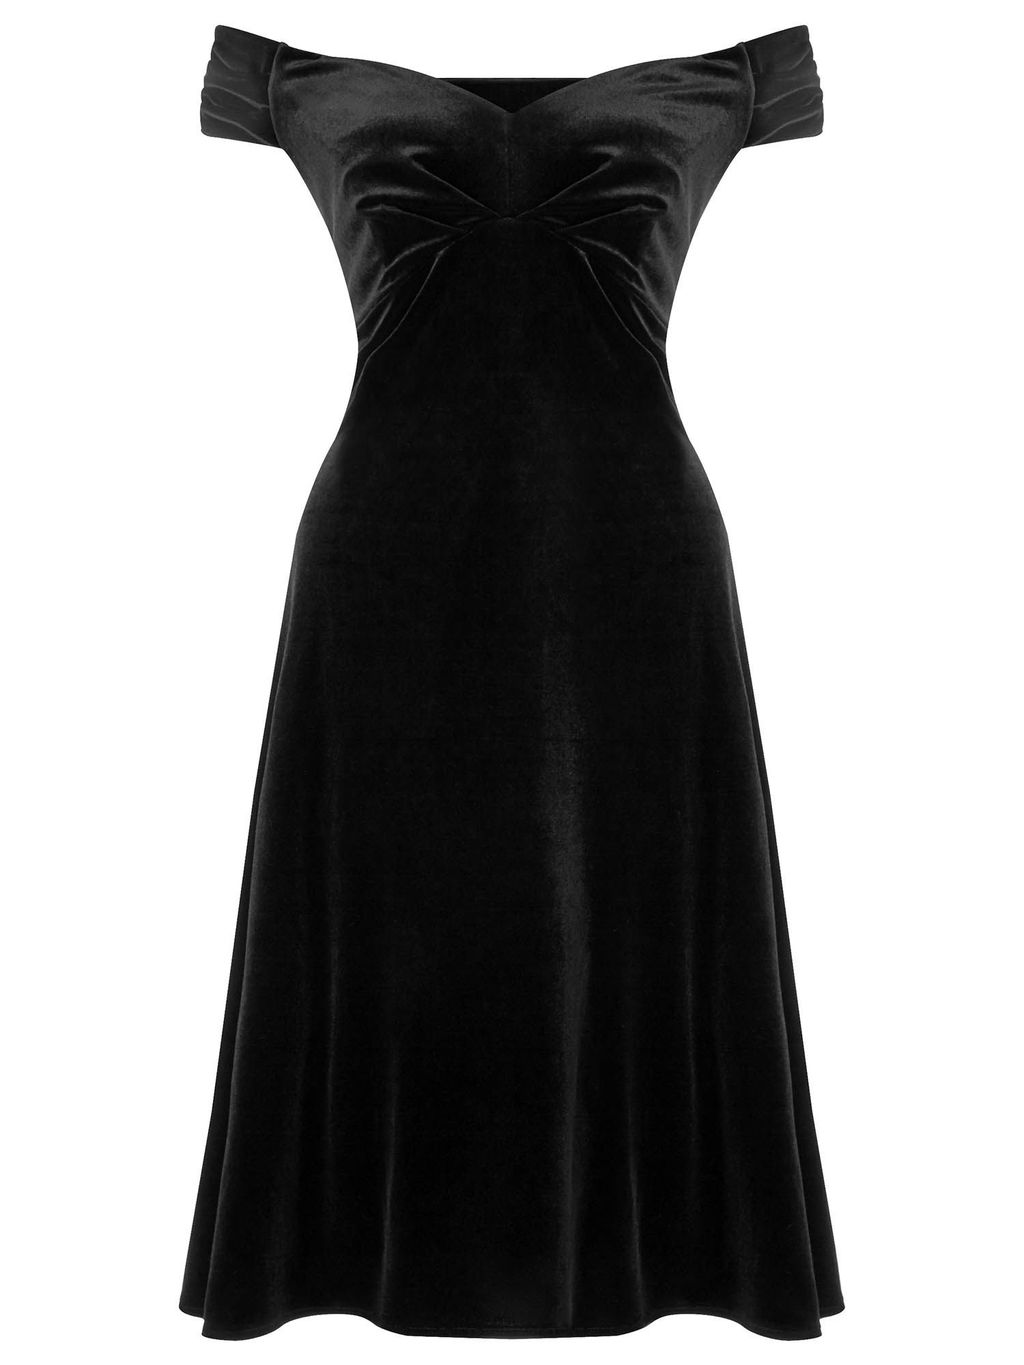 Danna Off The Shoulder Velvet Dress, Black - neckline: off the shoulder; sleeve style: capped; pattern: plain; predominant colour: black; occasions: evening, occasion; length: just above the knee; fit: fitted at waist & bust; style: fit & flare; fibres: polyester/polyamide - mix; sleeve length: short sleeve; pattern type: fabric; texture group: velvet/fabrics with pile; season: a/w 2015; wardrobe: event